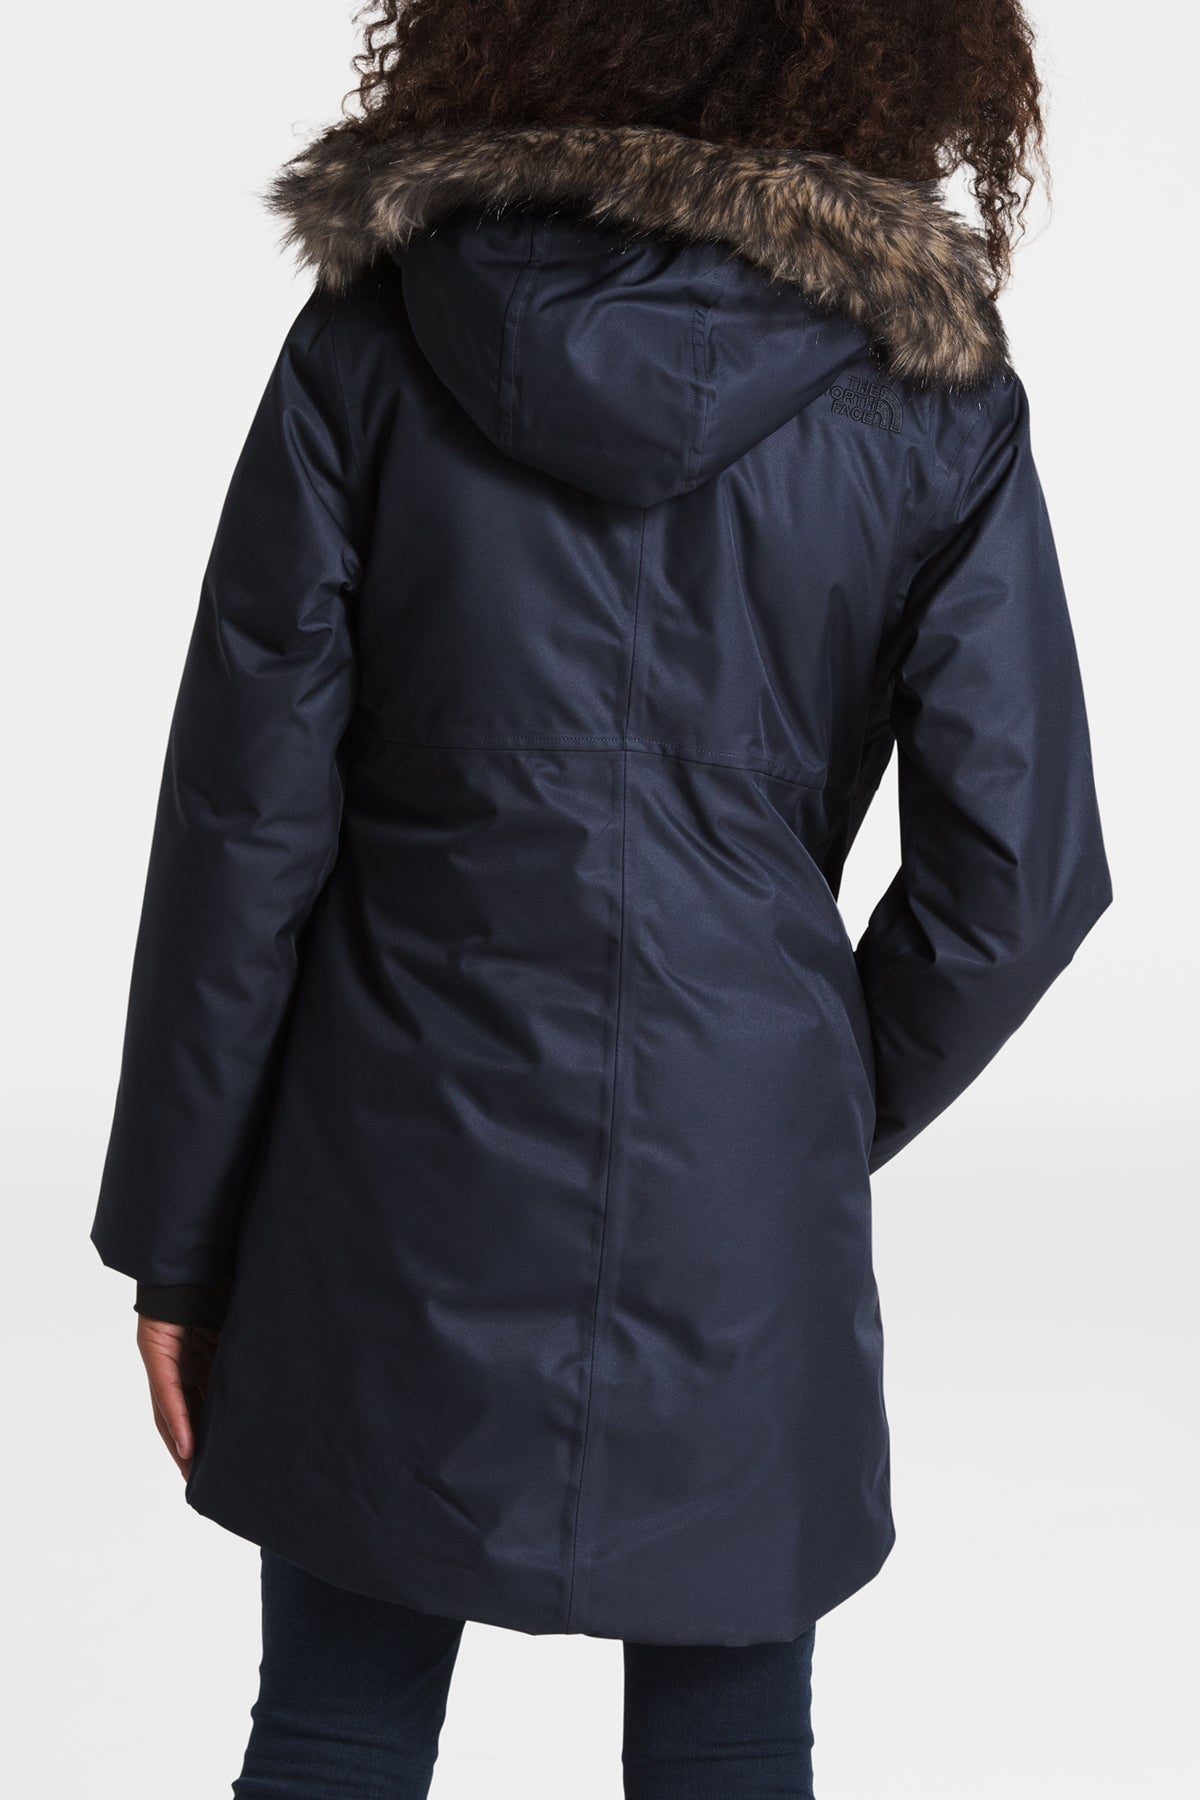 The North Face Girls Arctic Swirl Down Jacket - Montague Blue